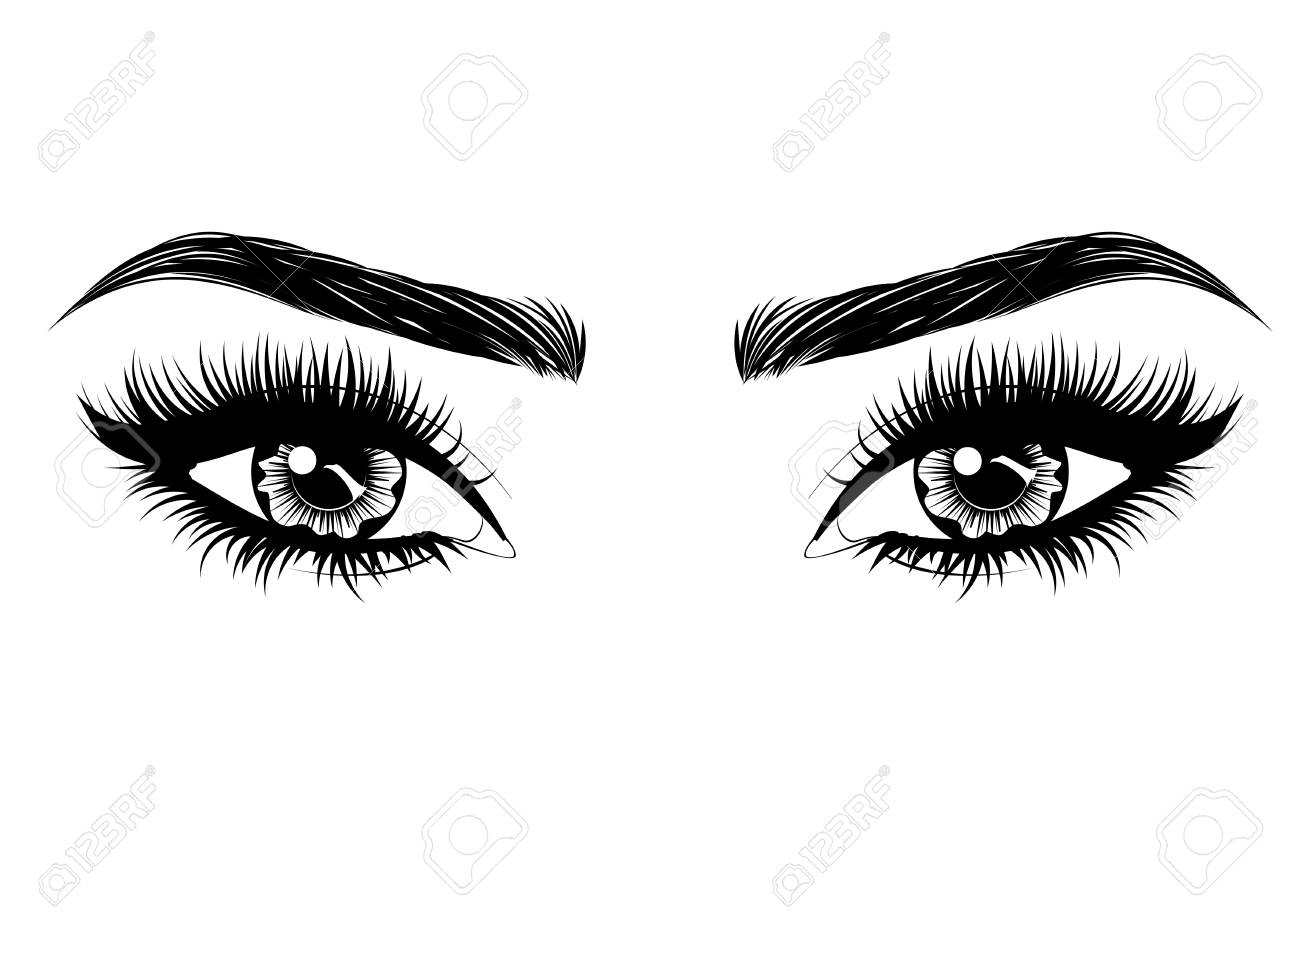 Female eyes with long black eyelashes and thick brows on white background. - 106393285